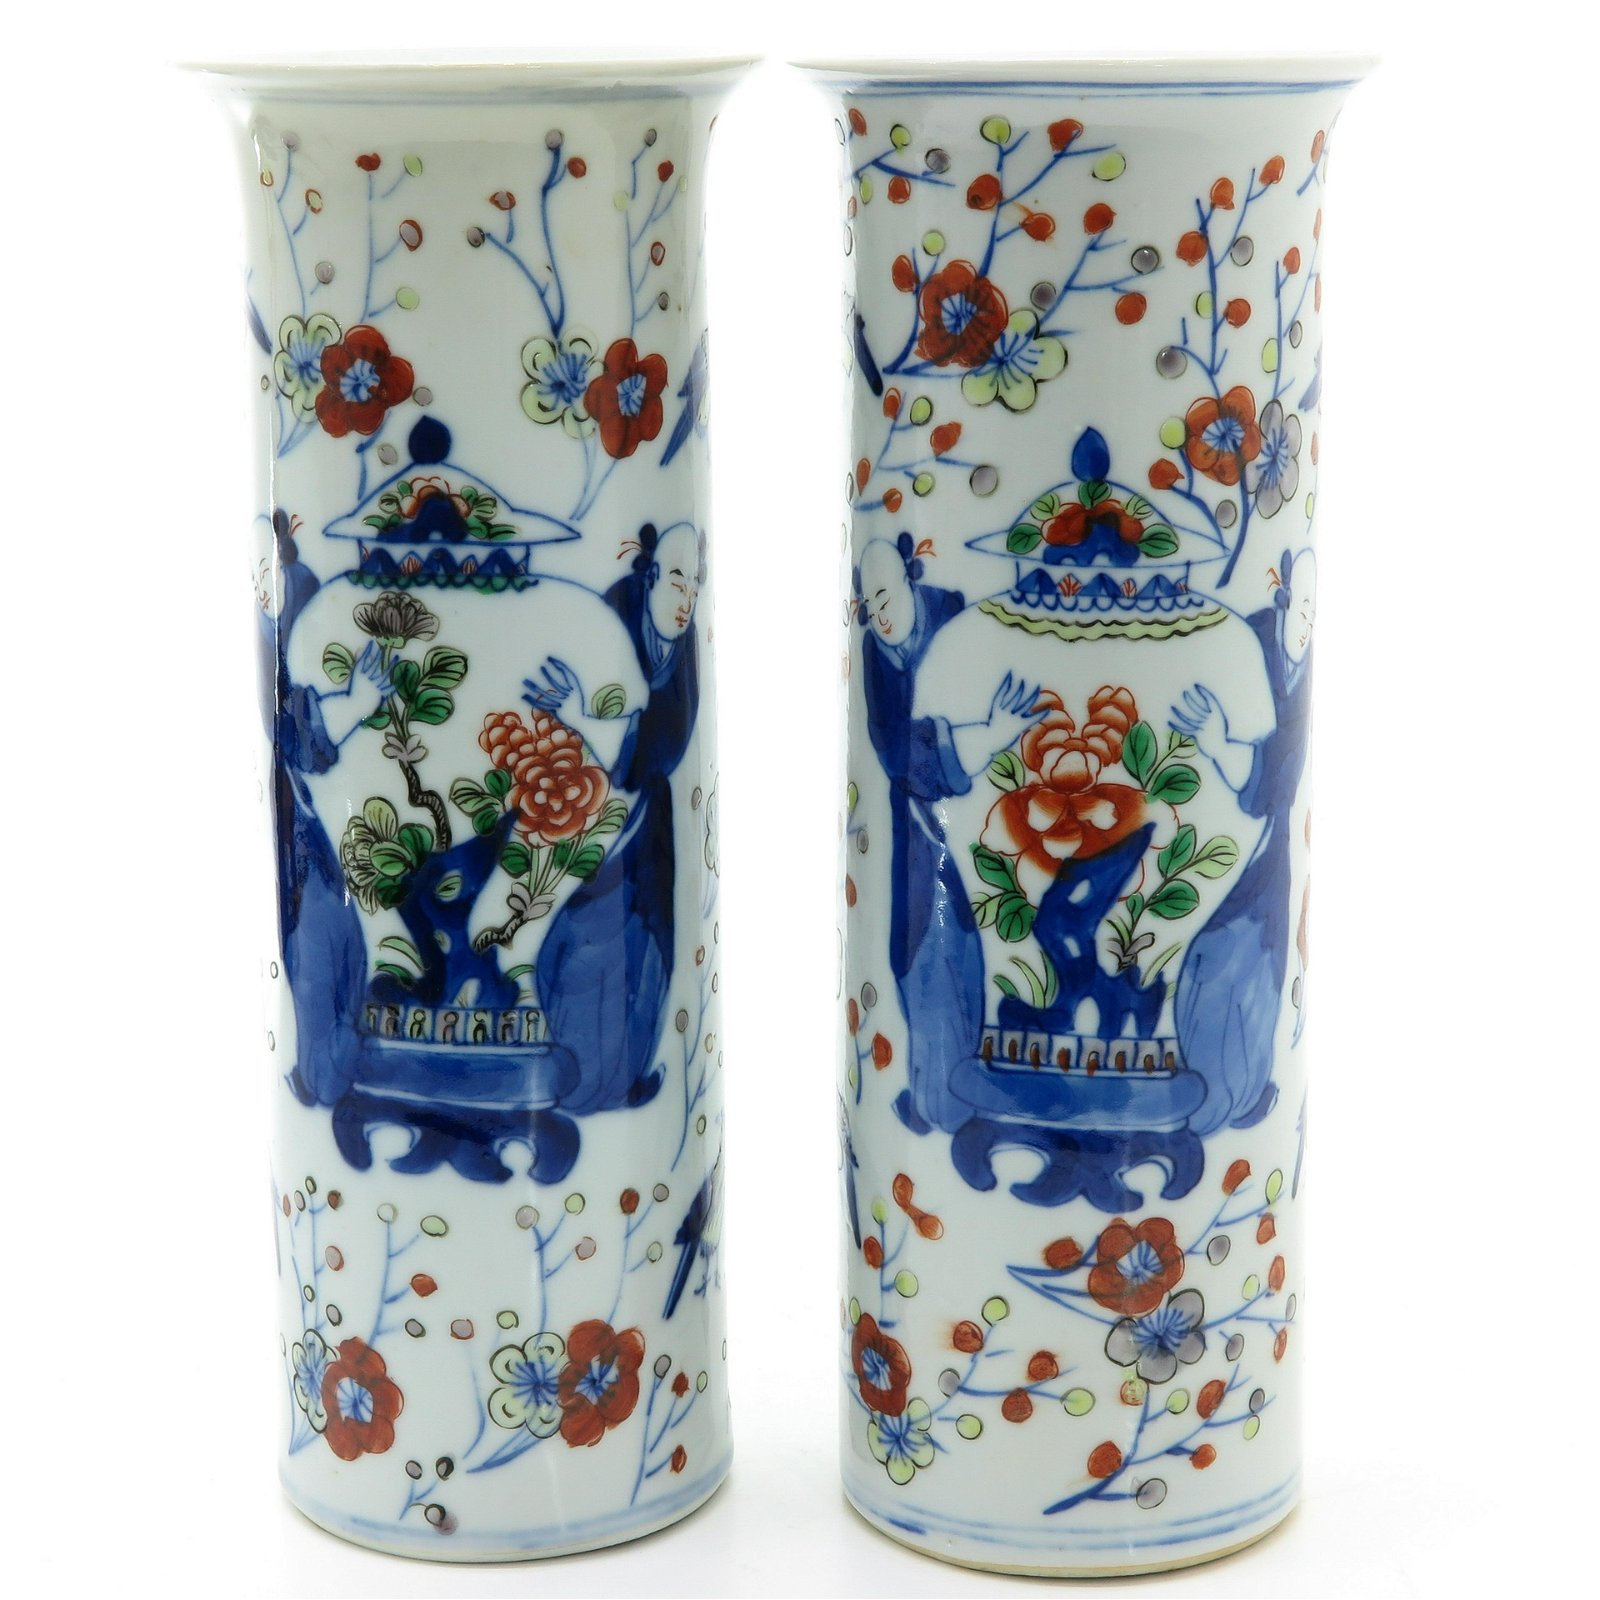 A Pair of Polychrome Decor Vases